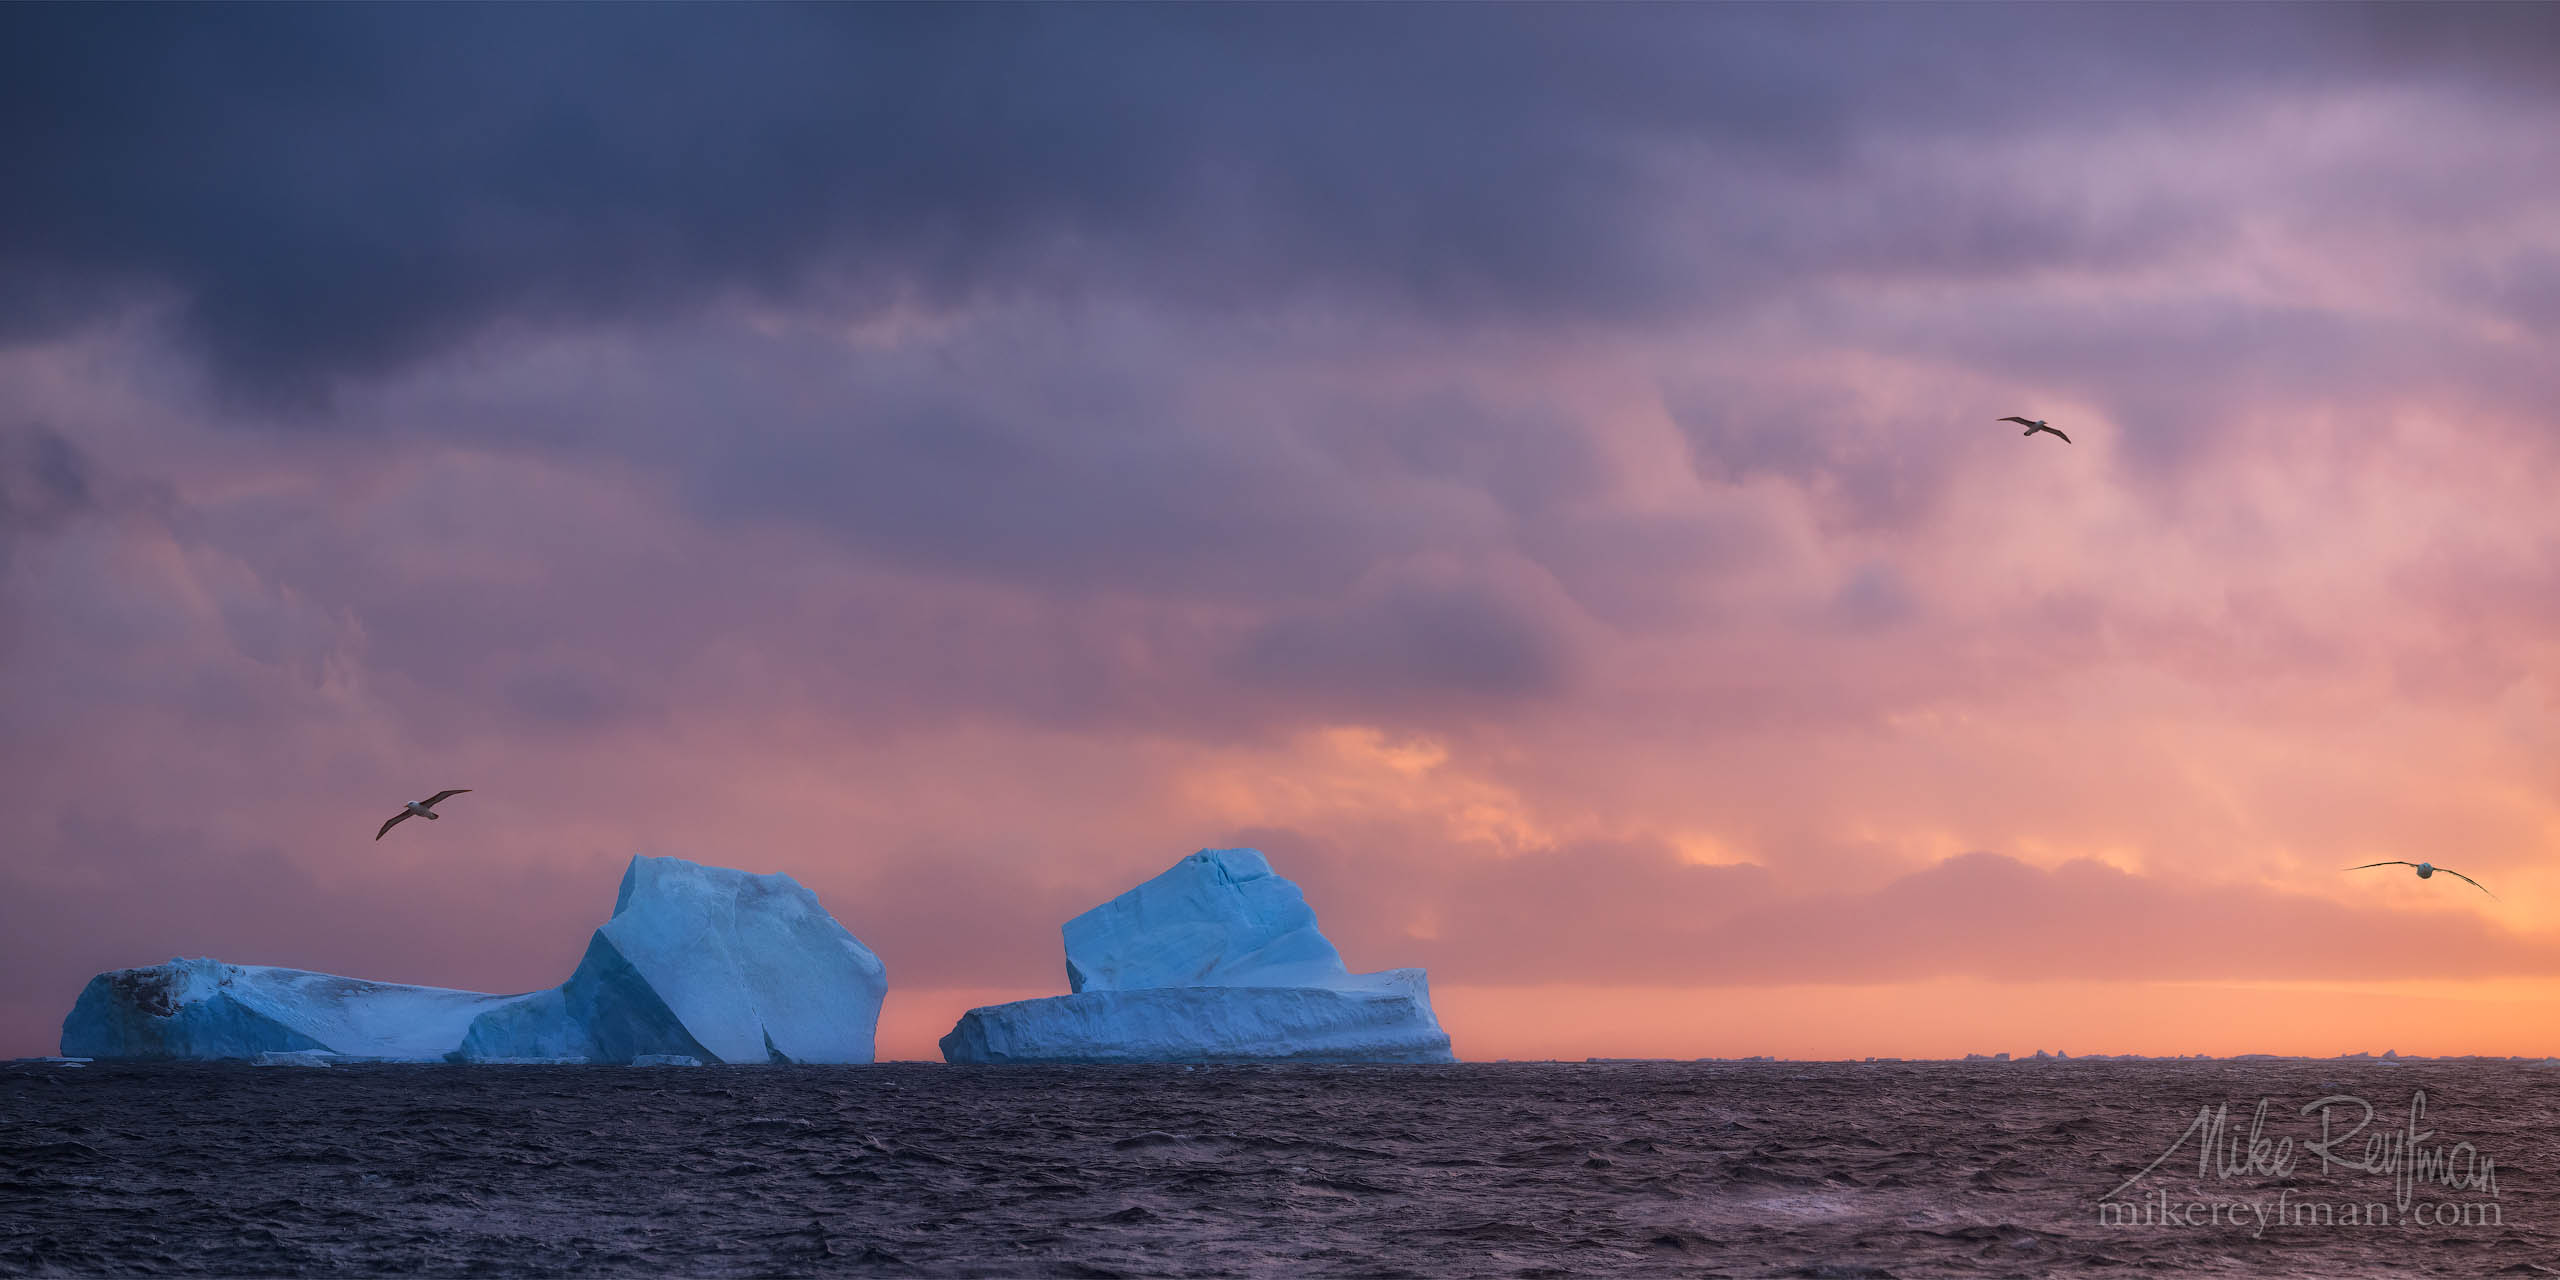 Bergs and Albatrosses in the Antarctic Sound. P12-MRD1A7214-15-Pano - Selected panoramic images with 2:1 aspect ratio - Mike Reyfman Photography